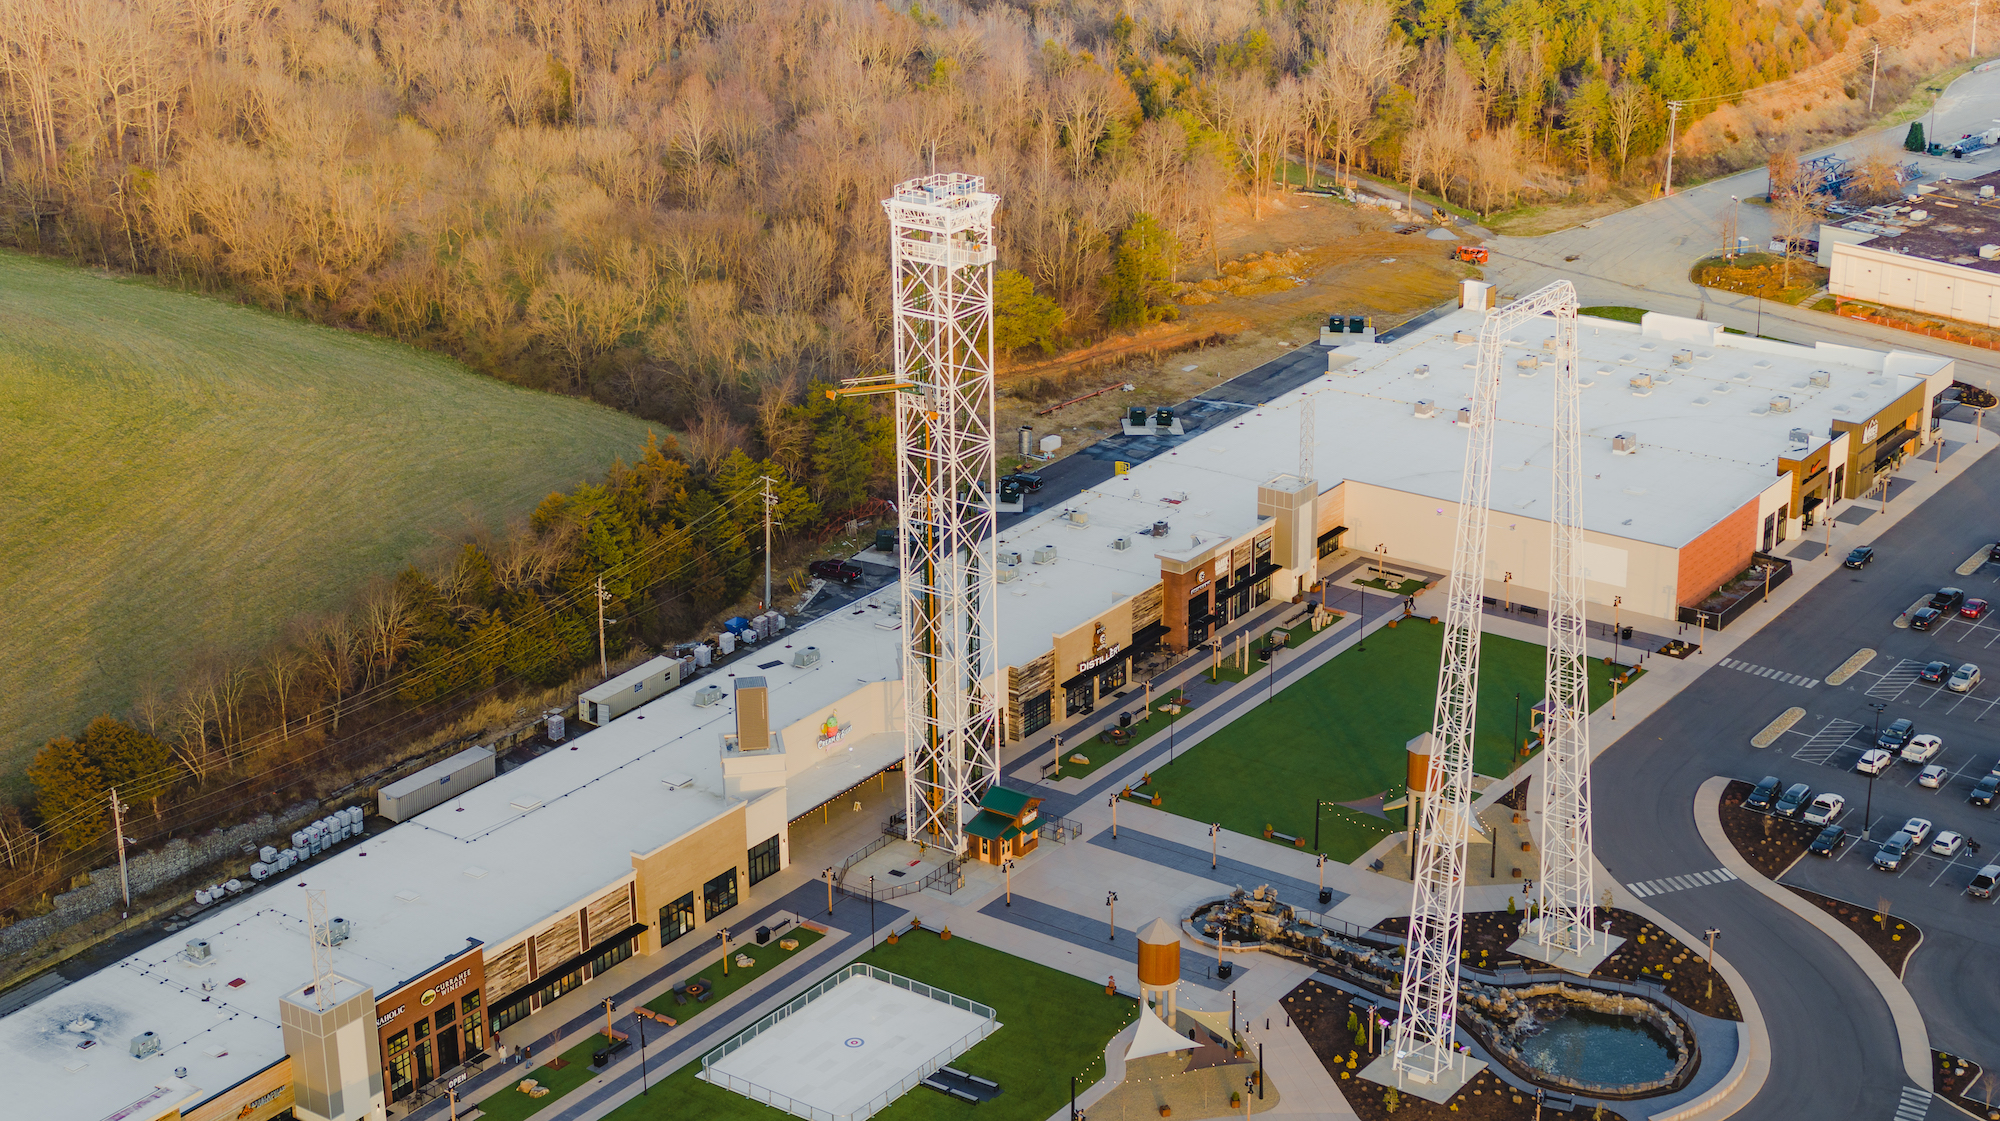 Over Head Drone Shot of the Mountain Mile Mall - Side angle in Pigeon Forge Tennessee